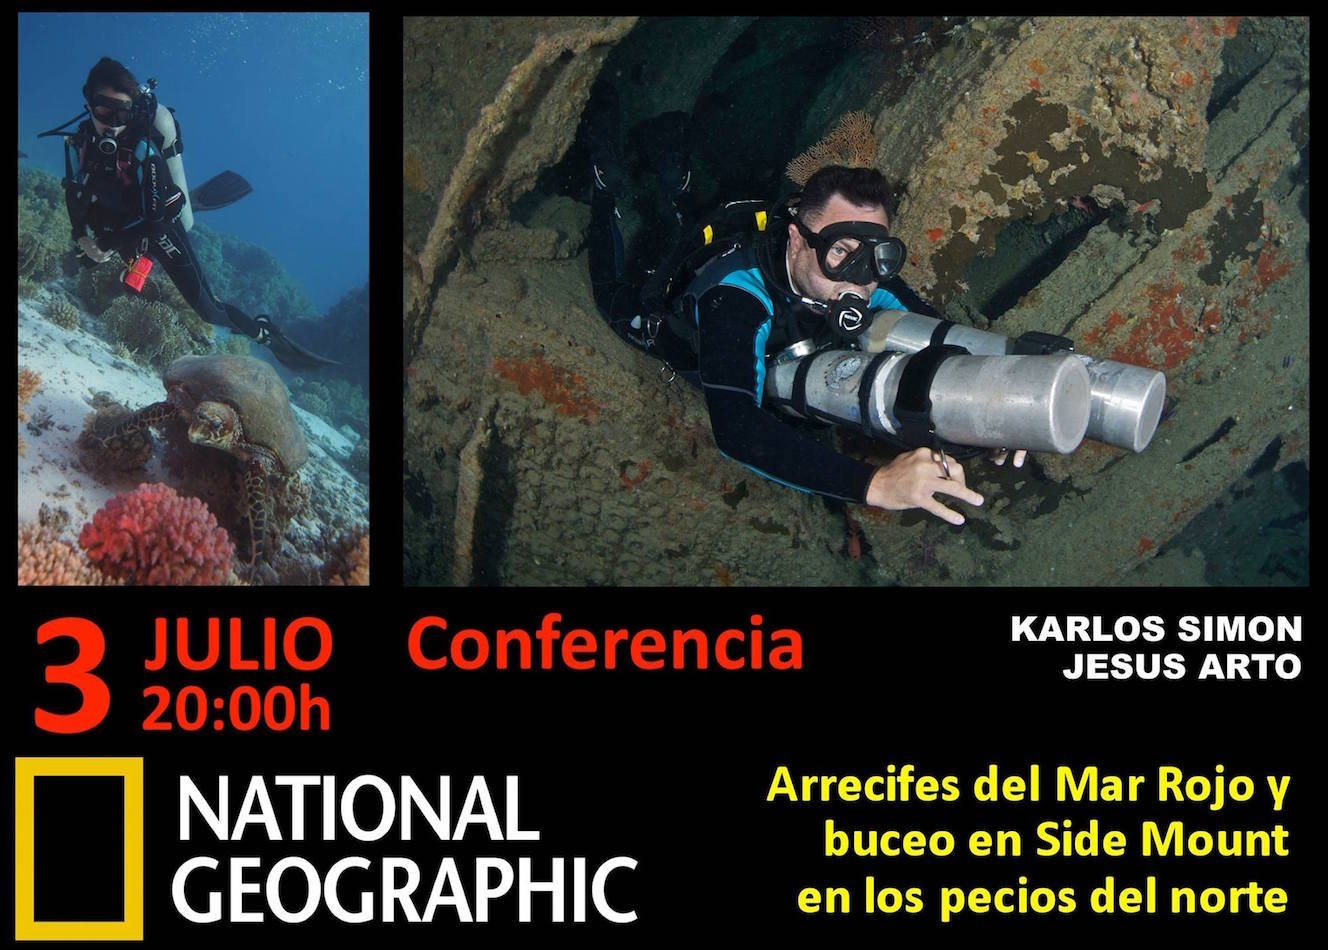 CONFERENCIA EN NATIONAL GEOGRAPHIC